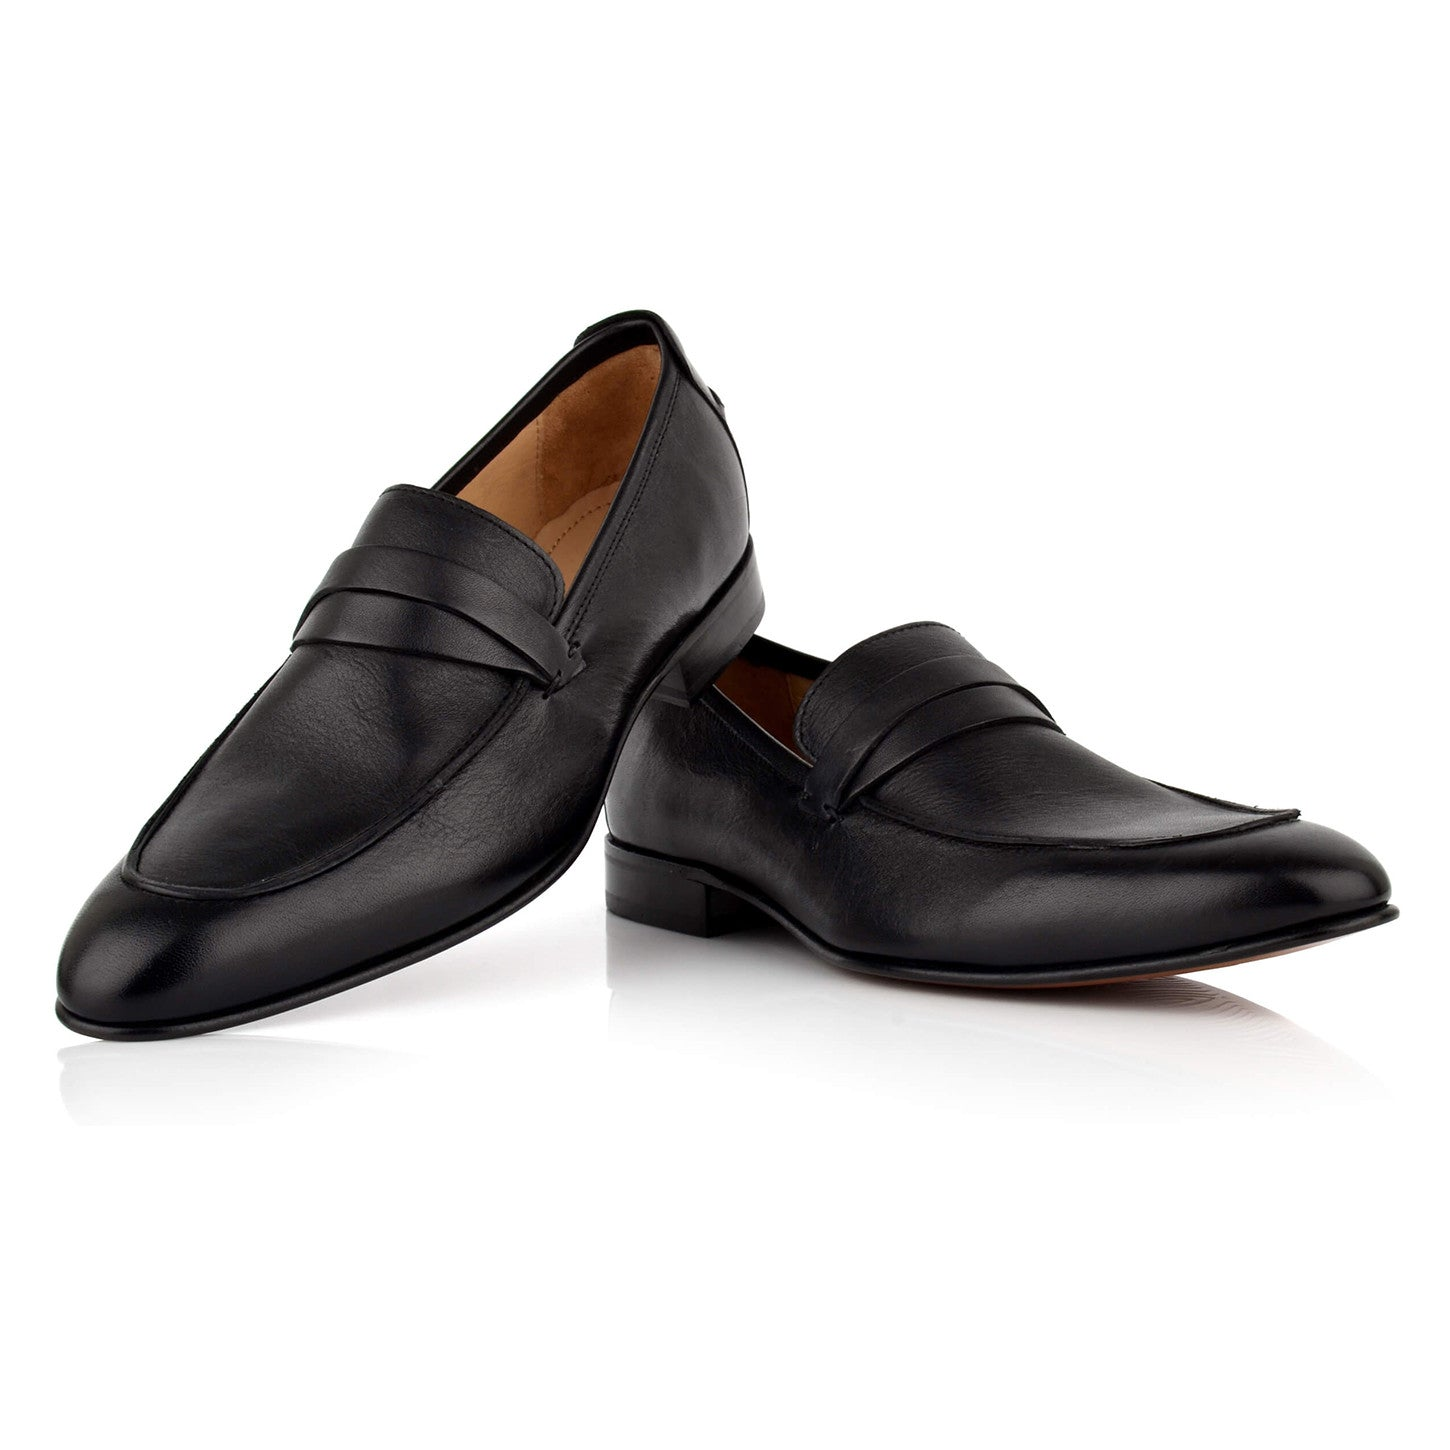 LM040 - Language Iosta Men's Formal Black Loafers